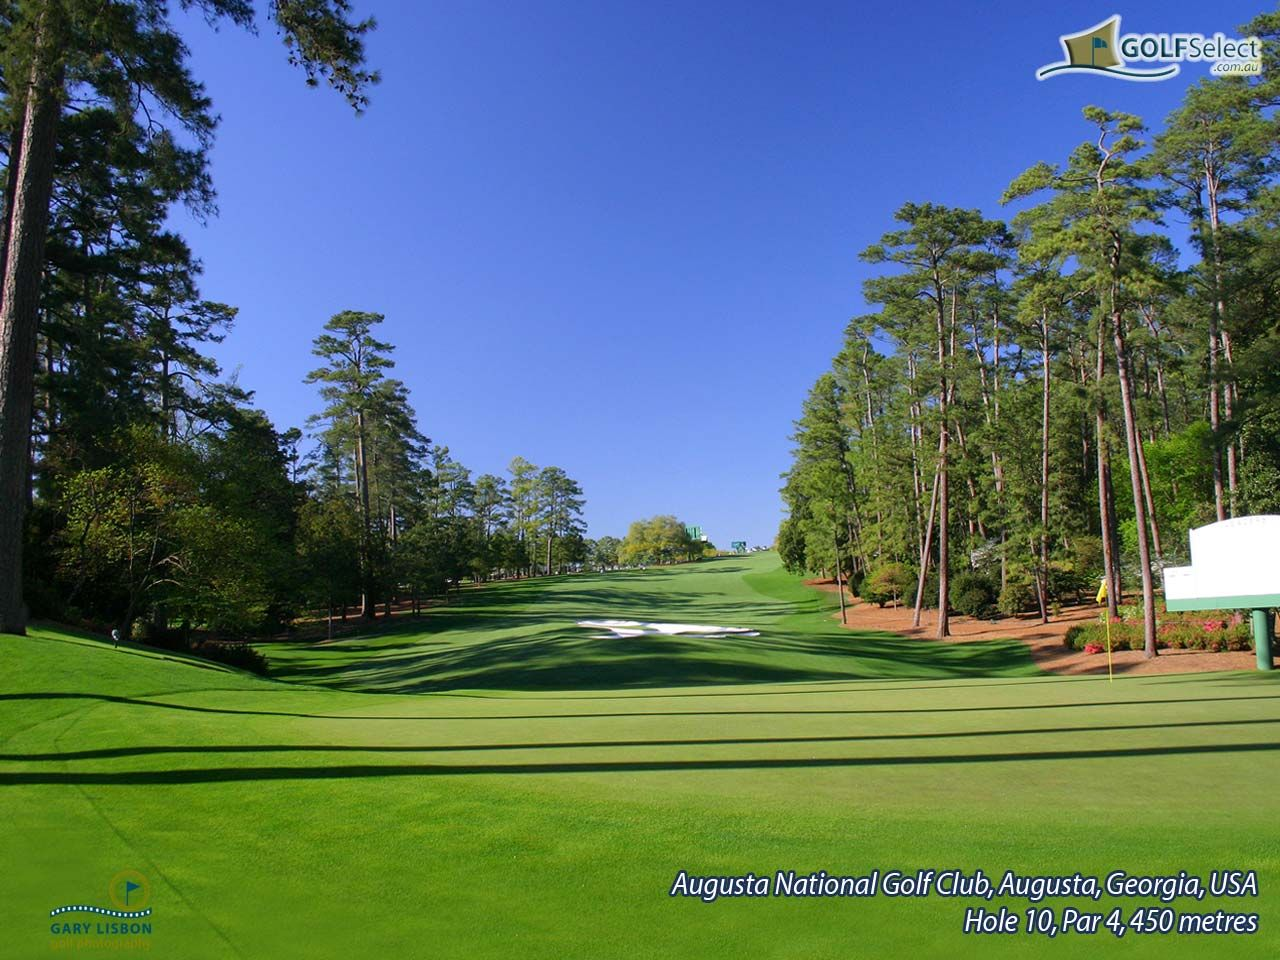 Augusta Wallpapers For Tablets Android Apps on Google Play